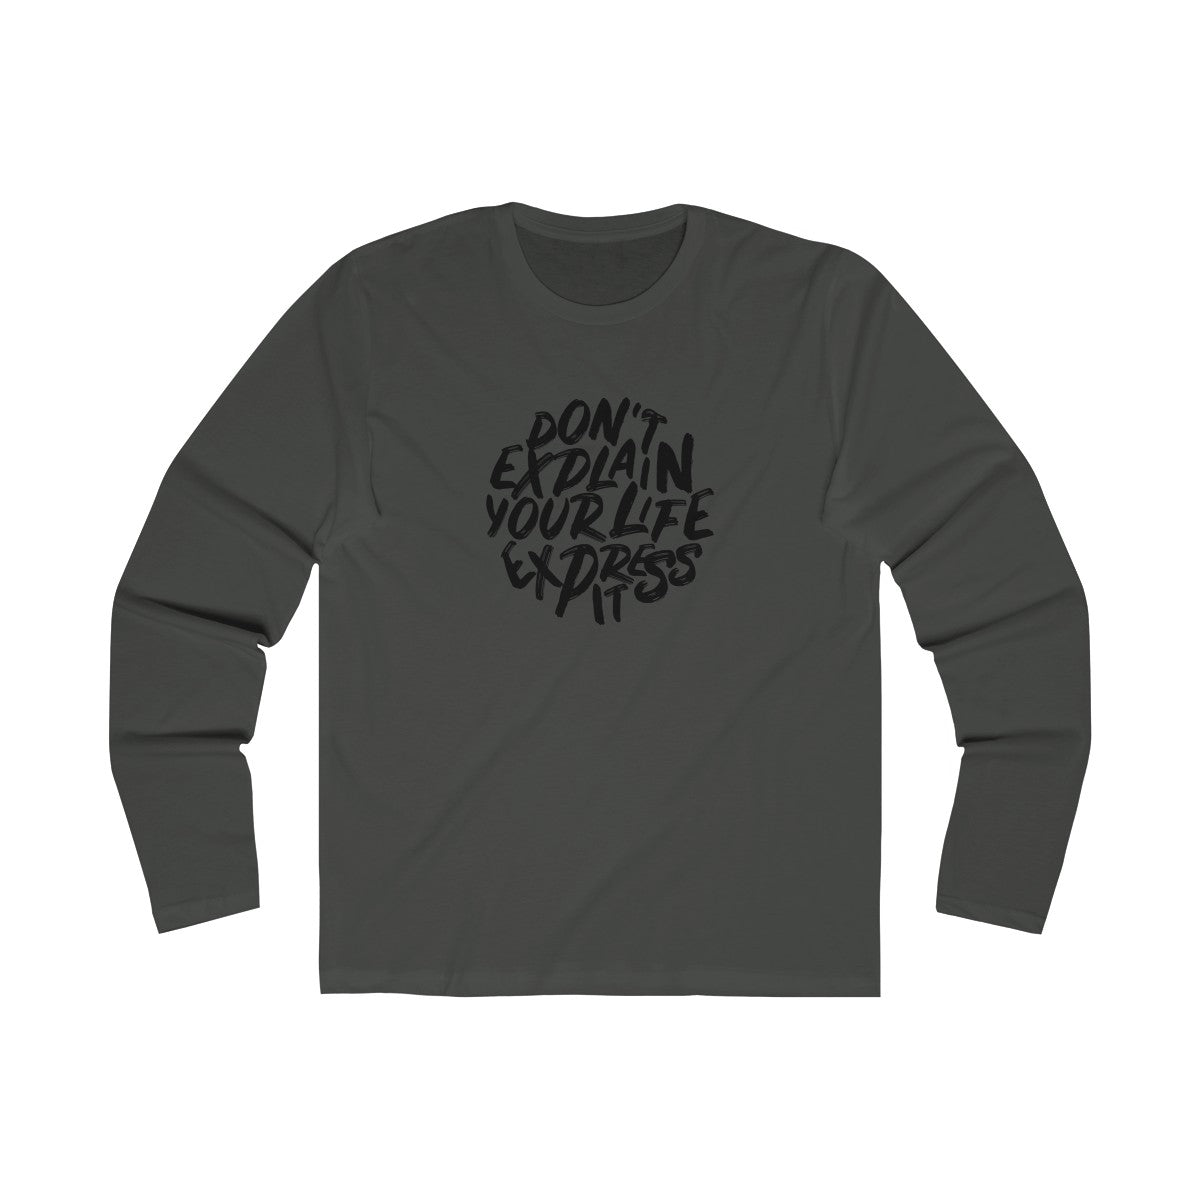 Dont Explain Your Life Express It Men's Long Sleeve Crew Tee